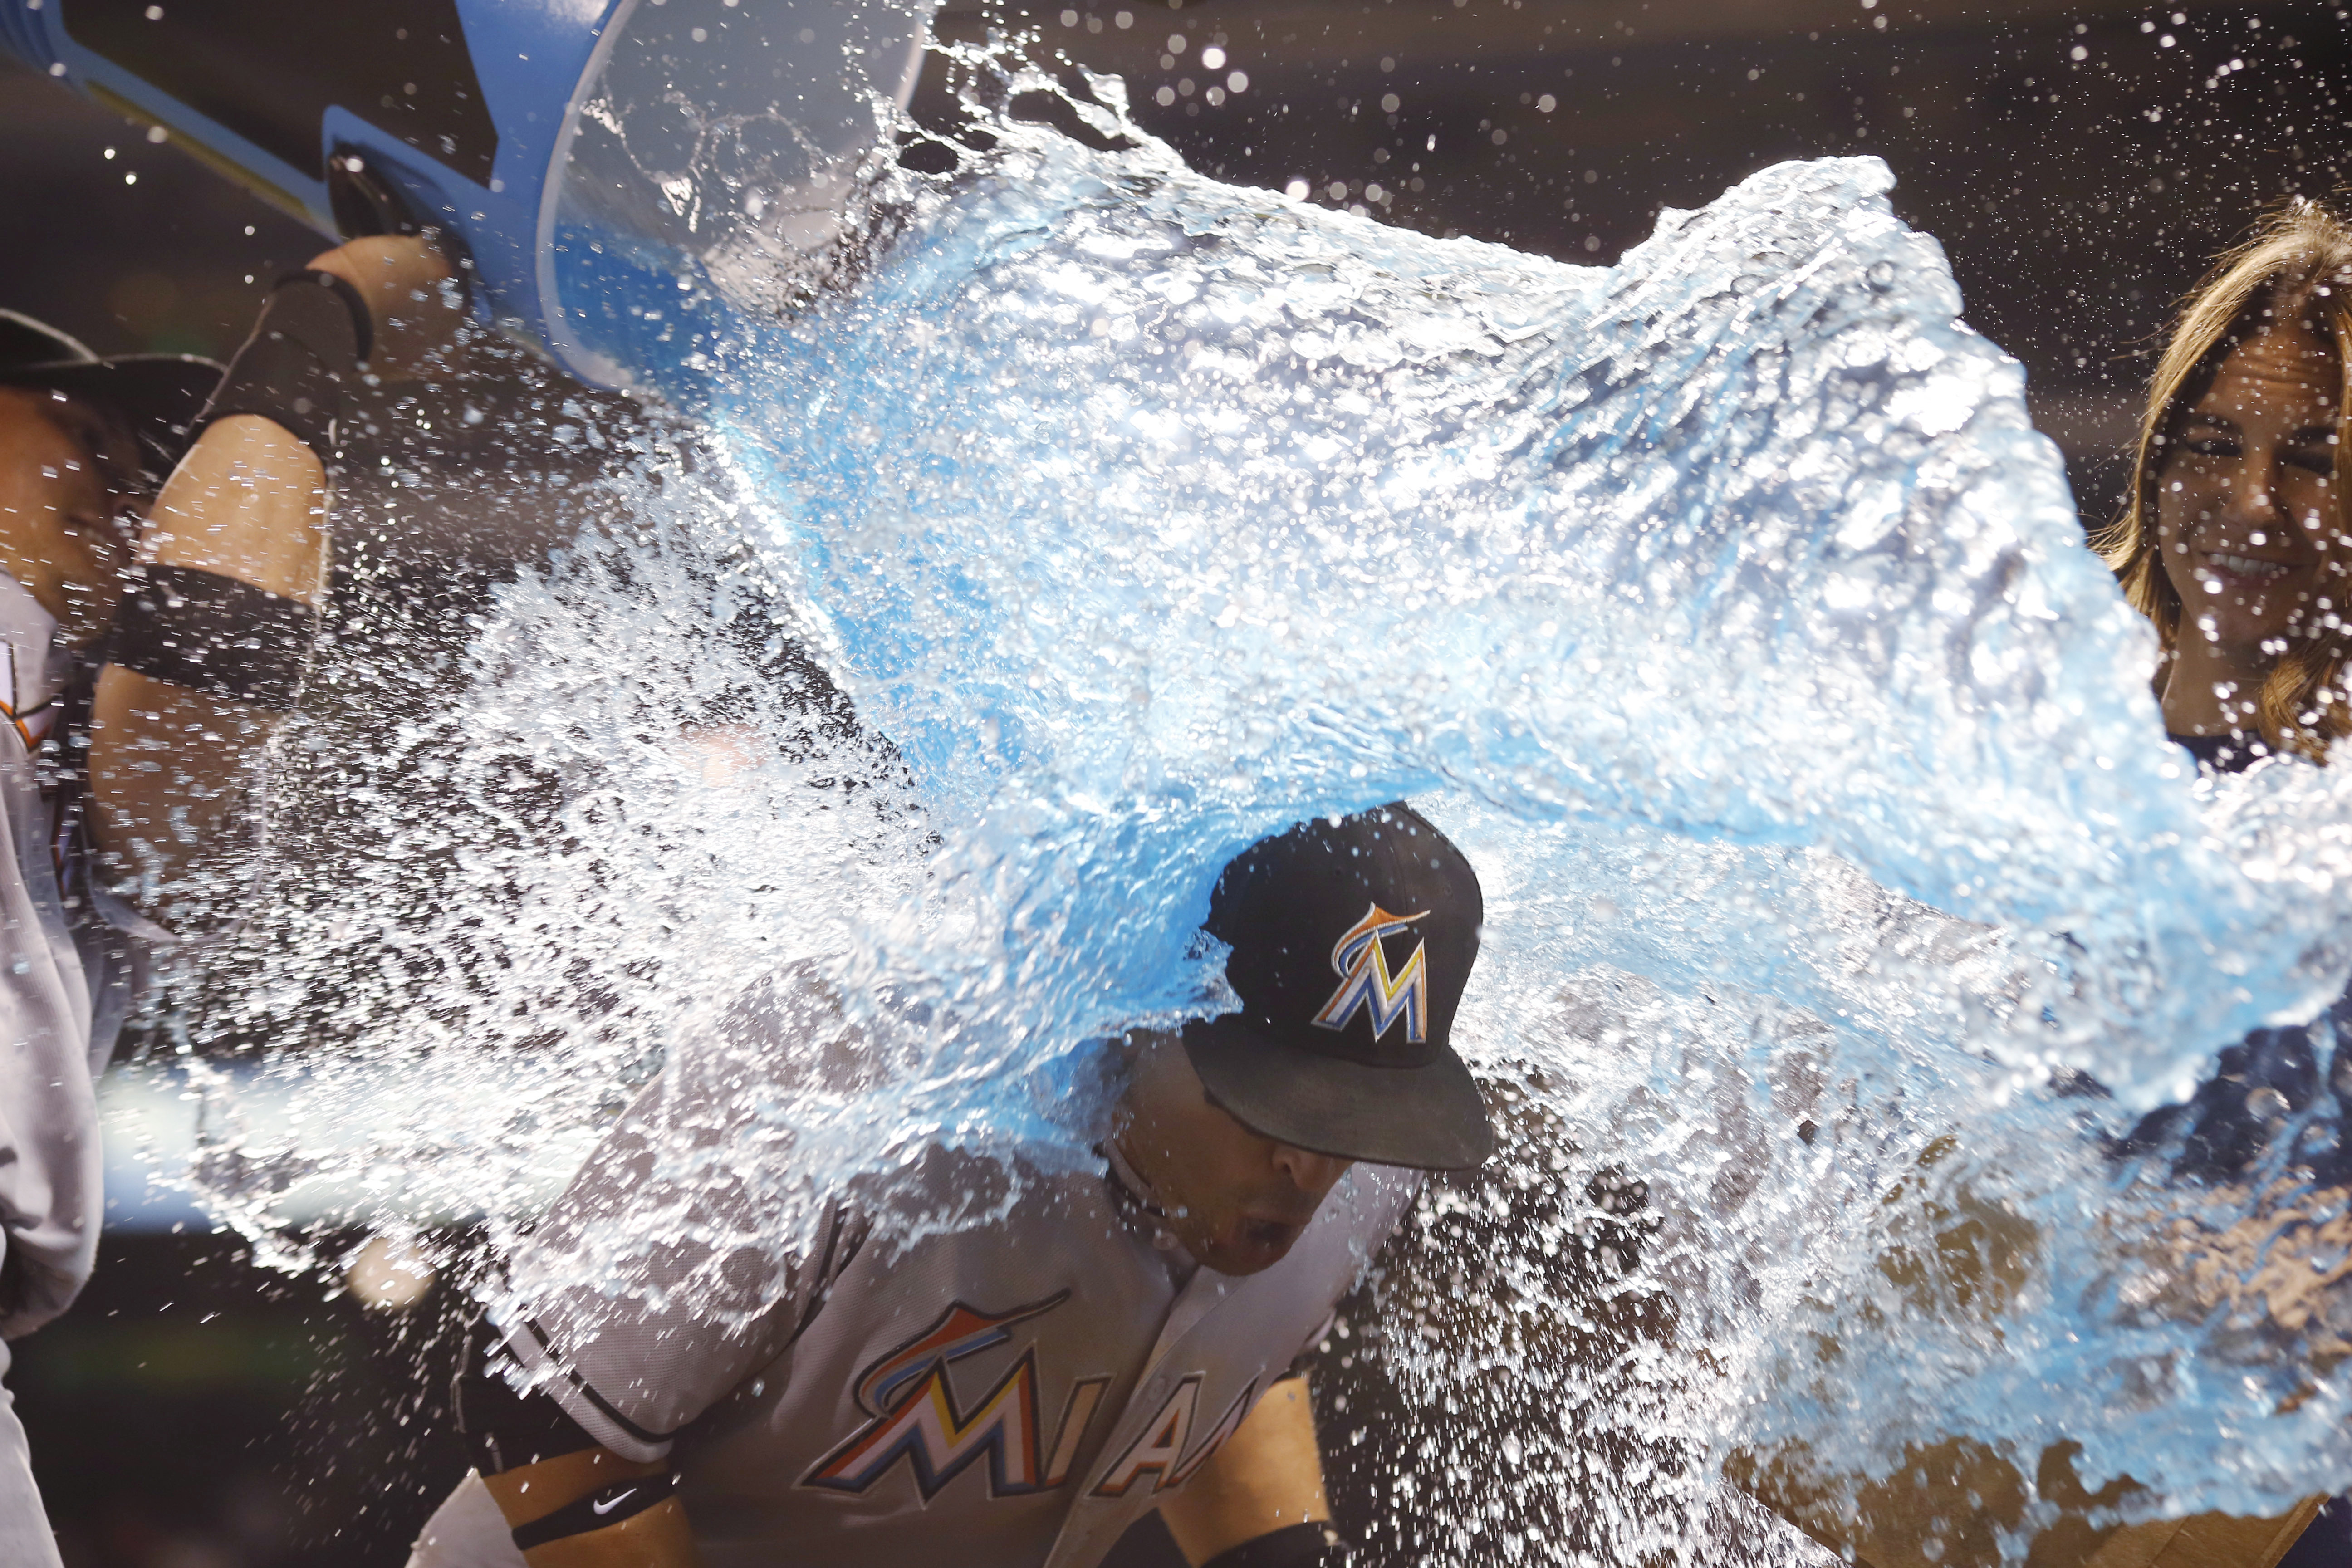 Miami Marlins second baseman Miguel Rojas, left, douses third baseman Martin Prado after the Marlins' 5-3 victory over the Colorado Rockies in a baseball game Friday, Aug. 5, 2016 in Denver. Prado hit a two-run single in the ninth inning. (AP Photo/David